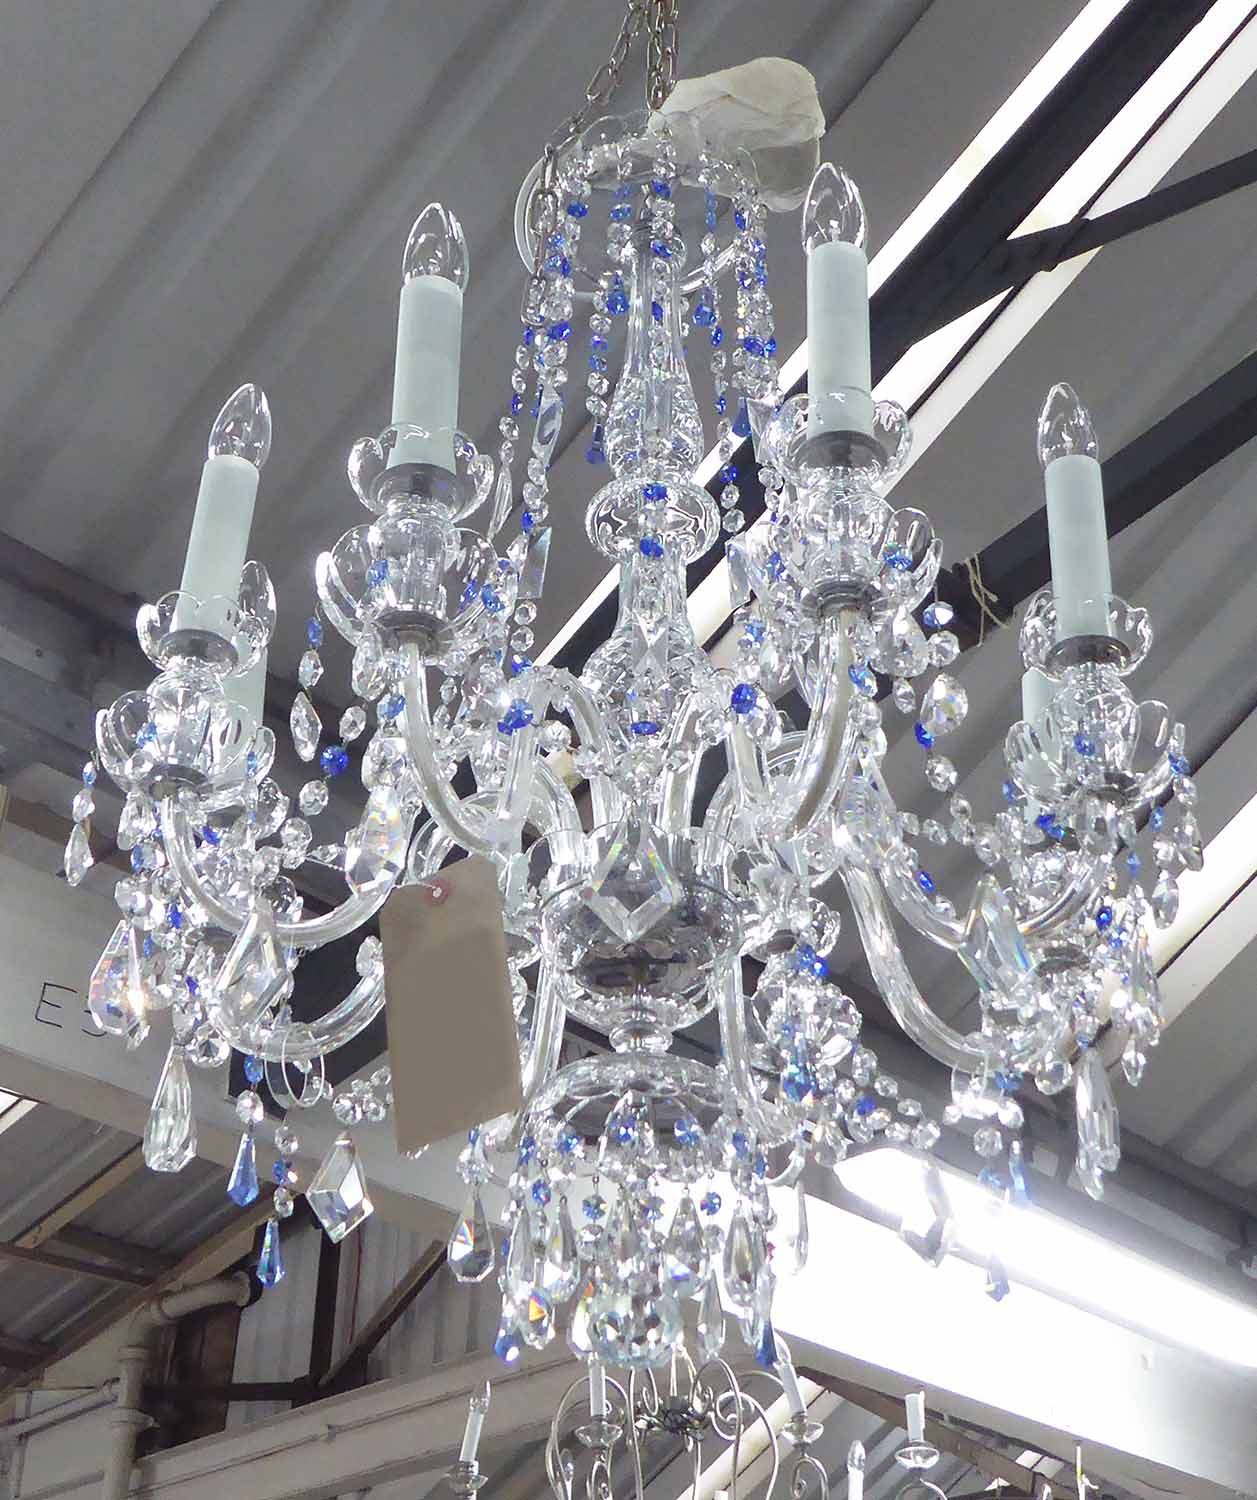 Lot 14 - CHANDELIER, Venetian style, eight branches with swept arms with clear and blue drops, plus chain,